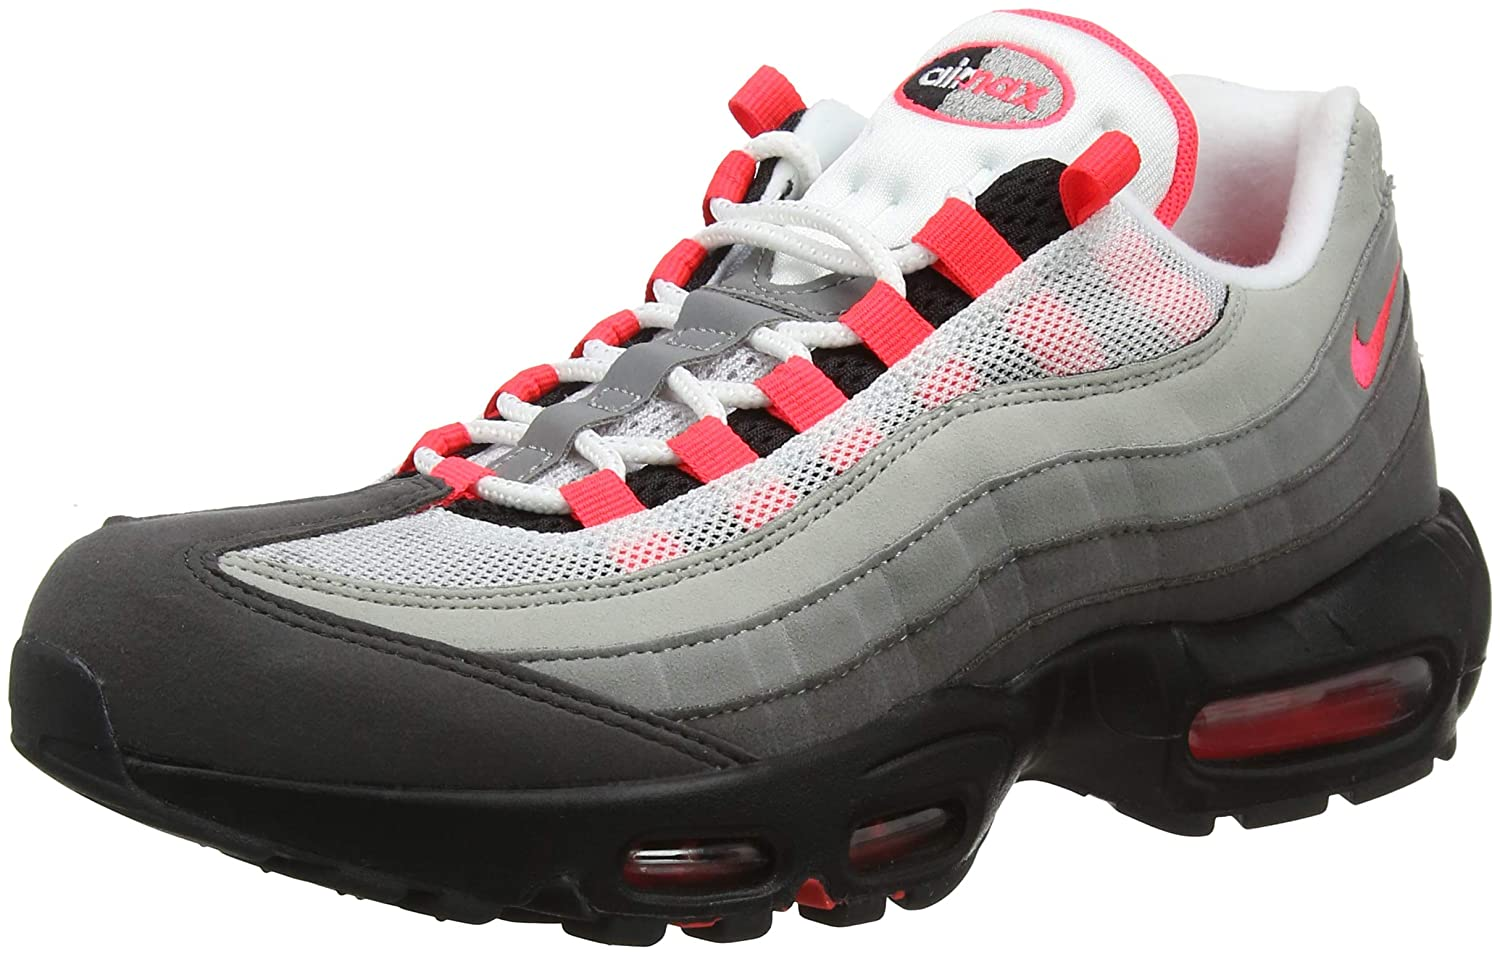 newest 4efa1 1dd27 Amazon.com  Nike Air Max 95 Men s Shoe   NIKE  Shoes